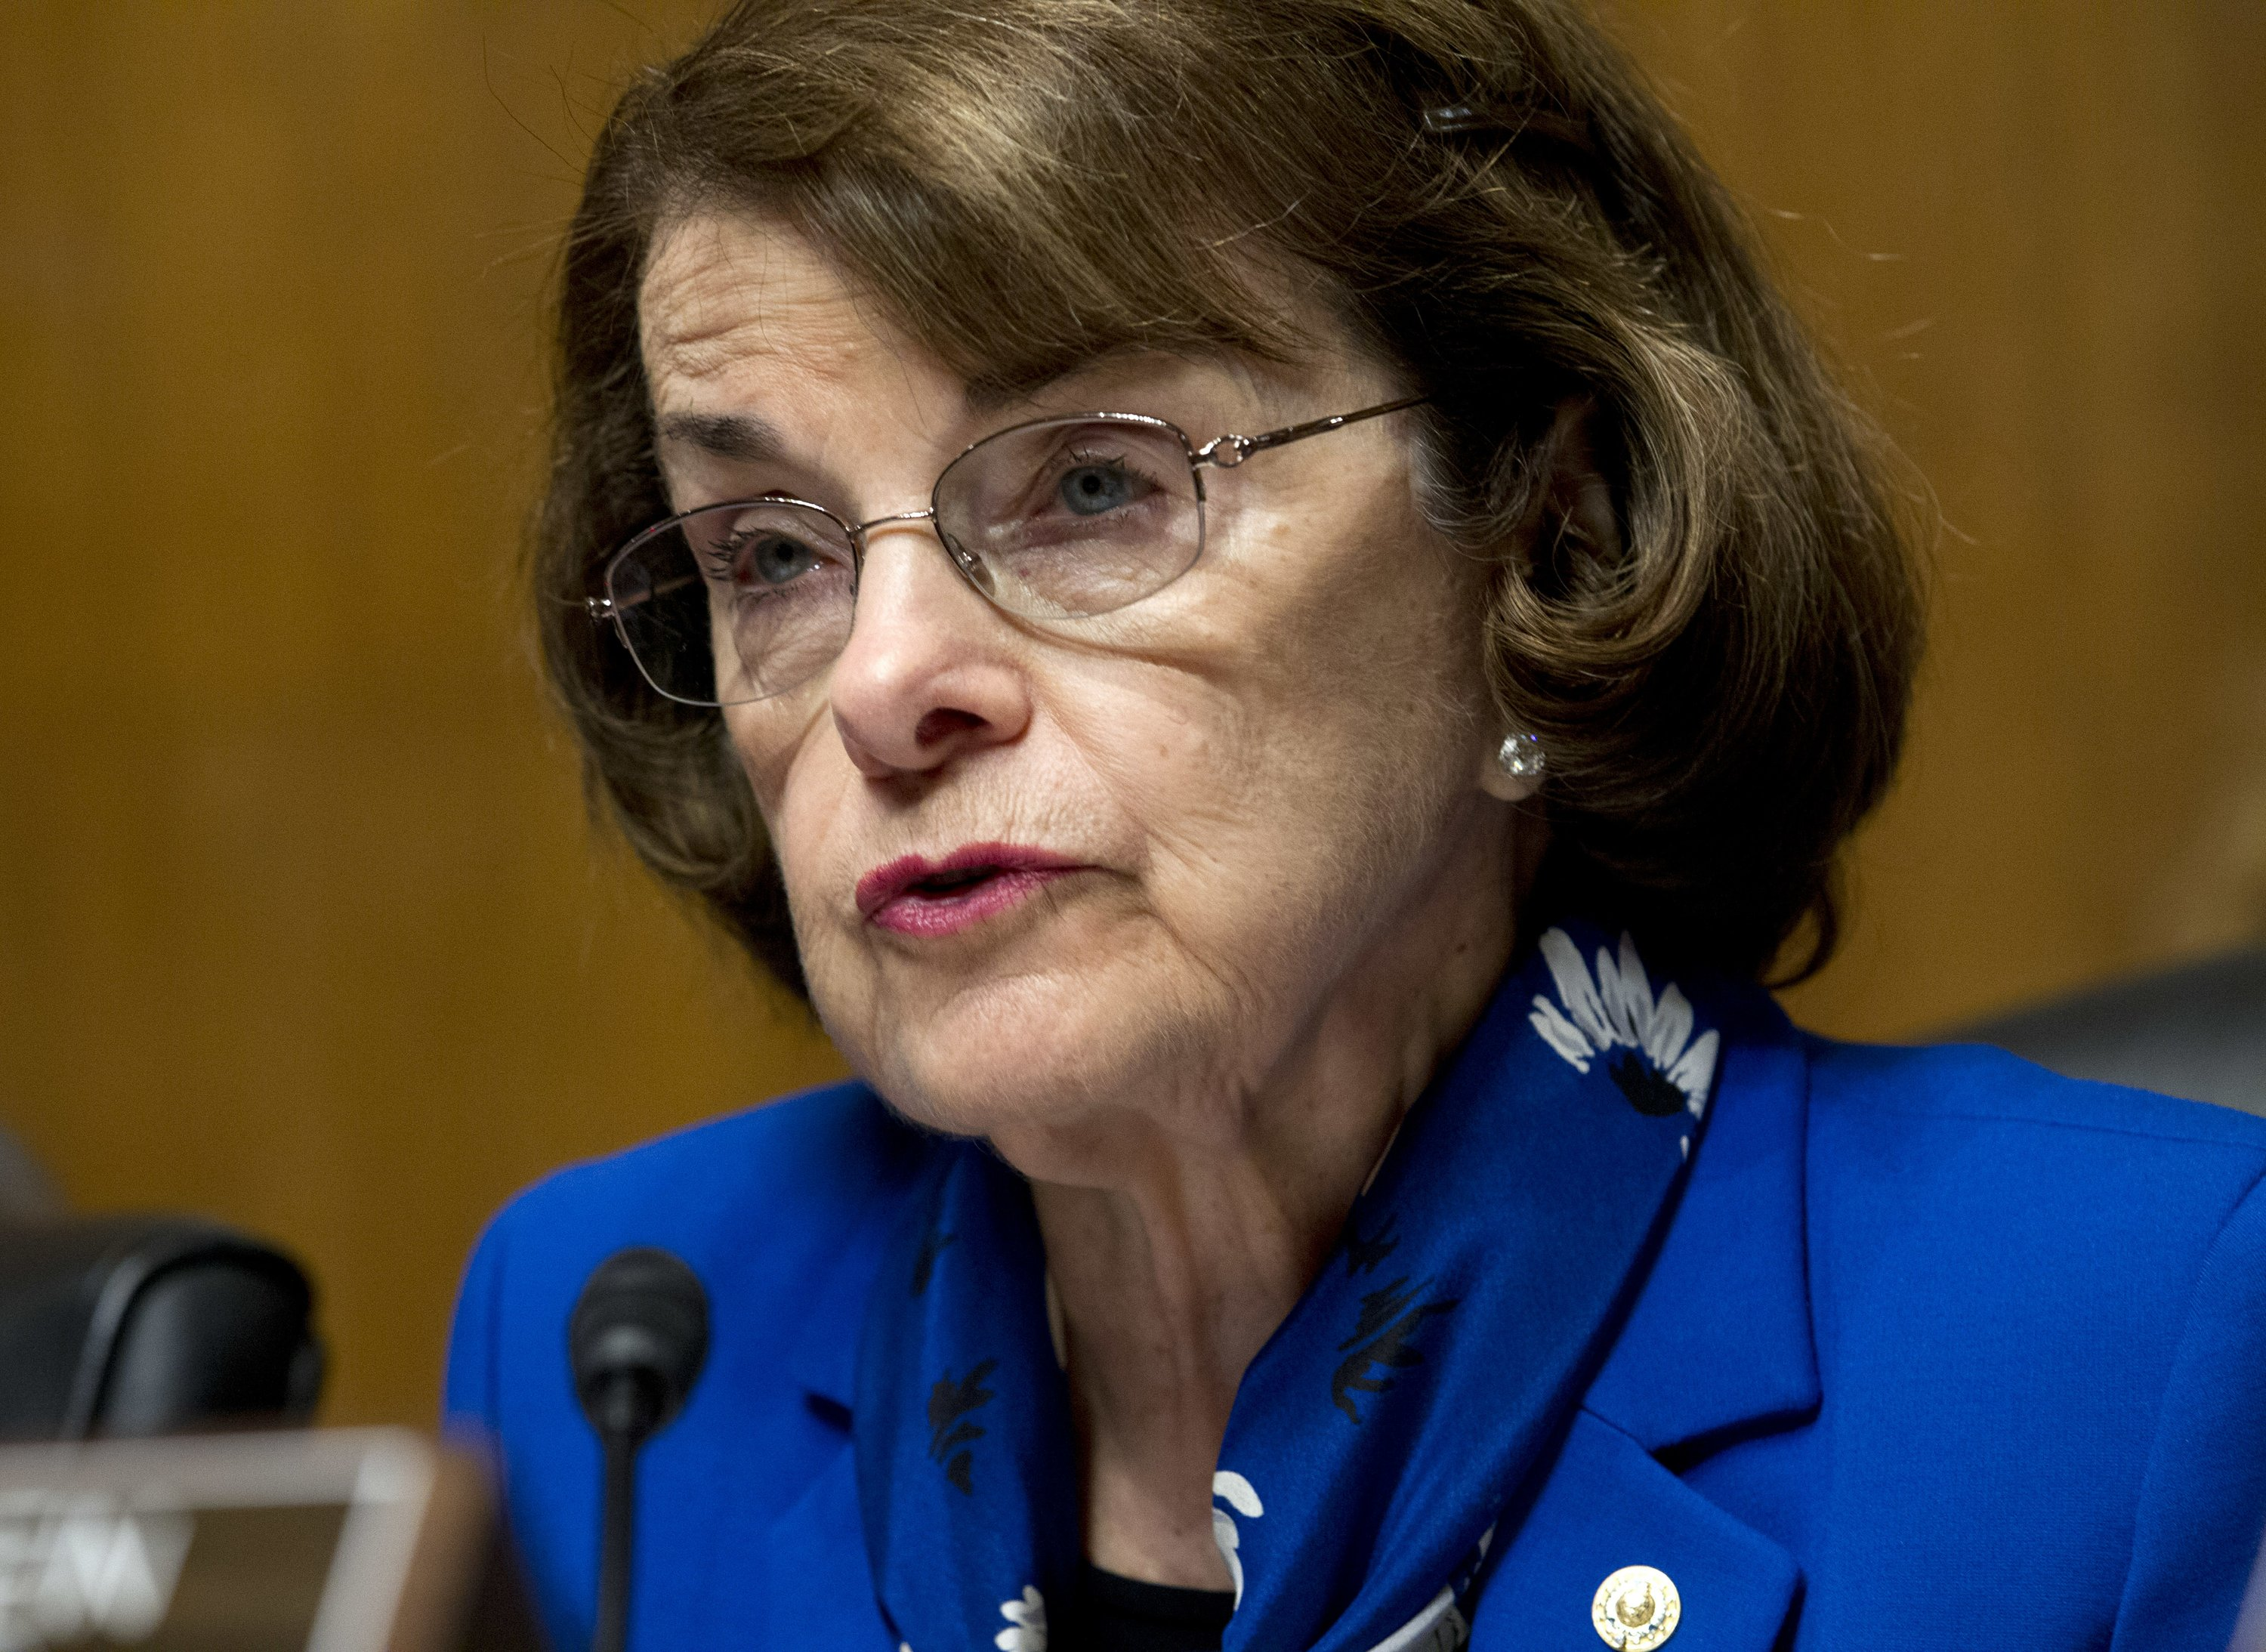 California's Feinstein drops support for death penalty